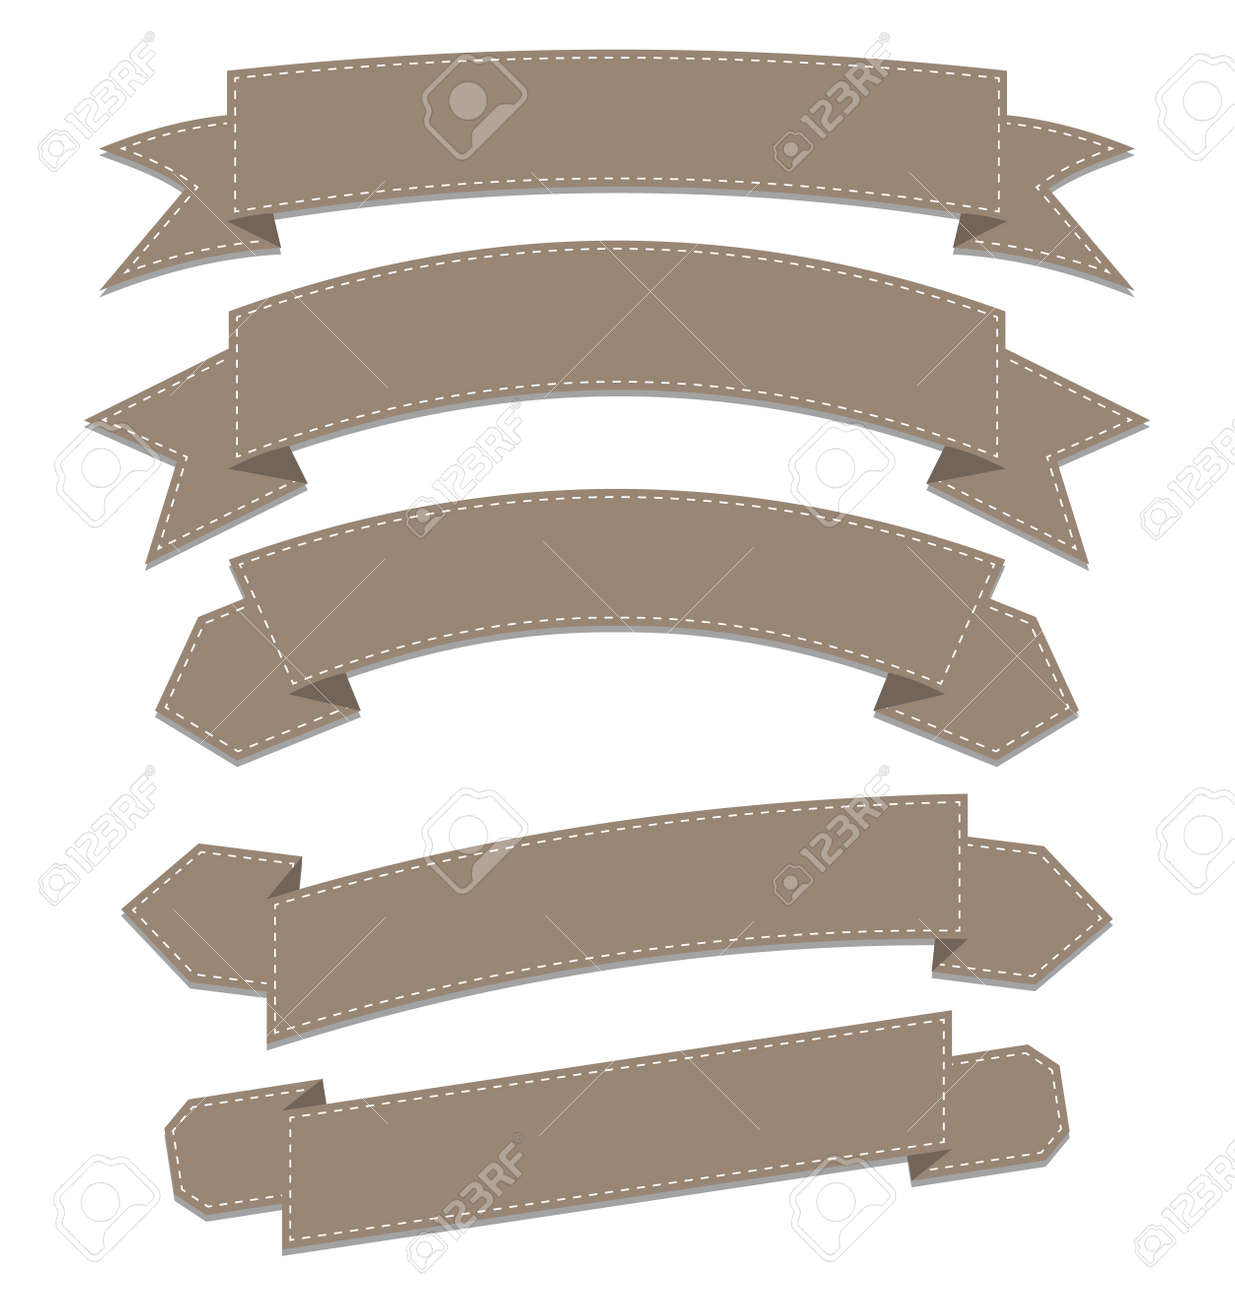 Illustration set leather ribbons, various forms - vector Stock Photo - 22096361